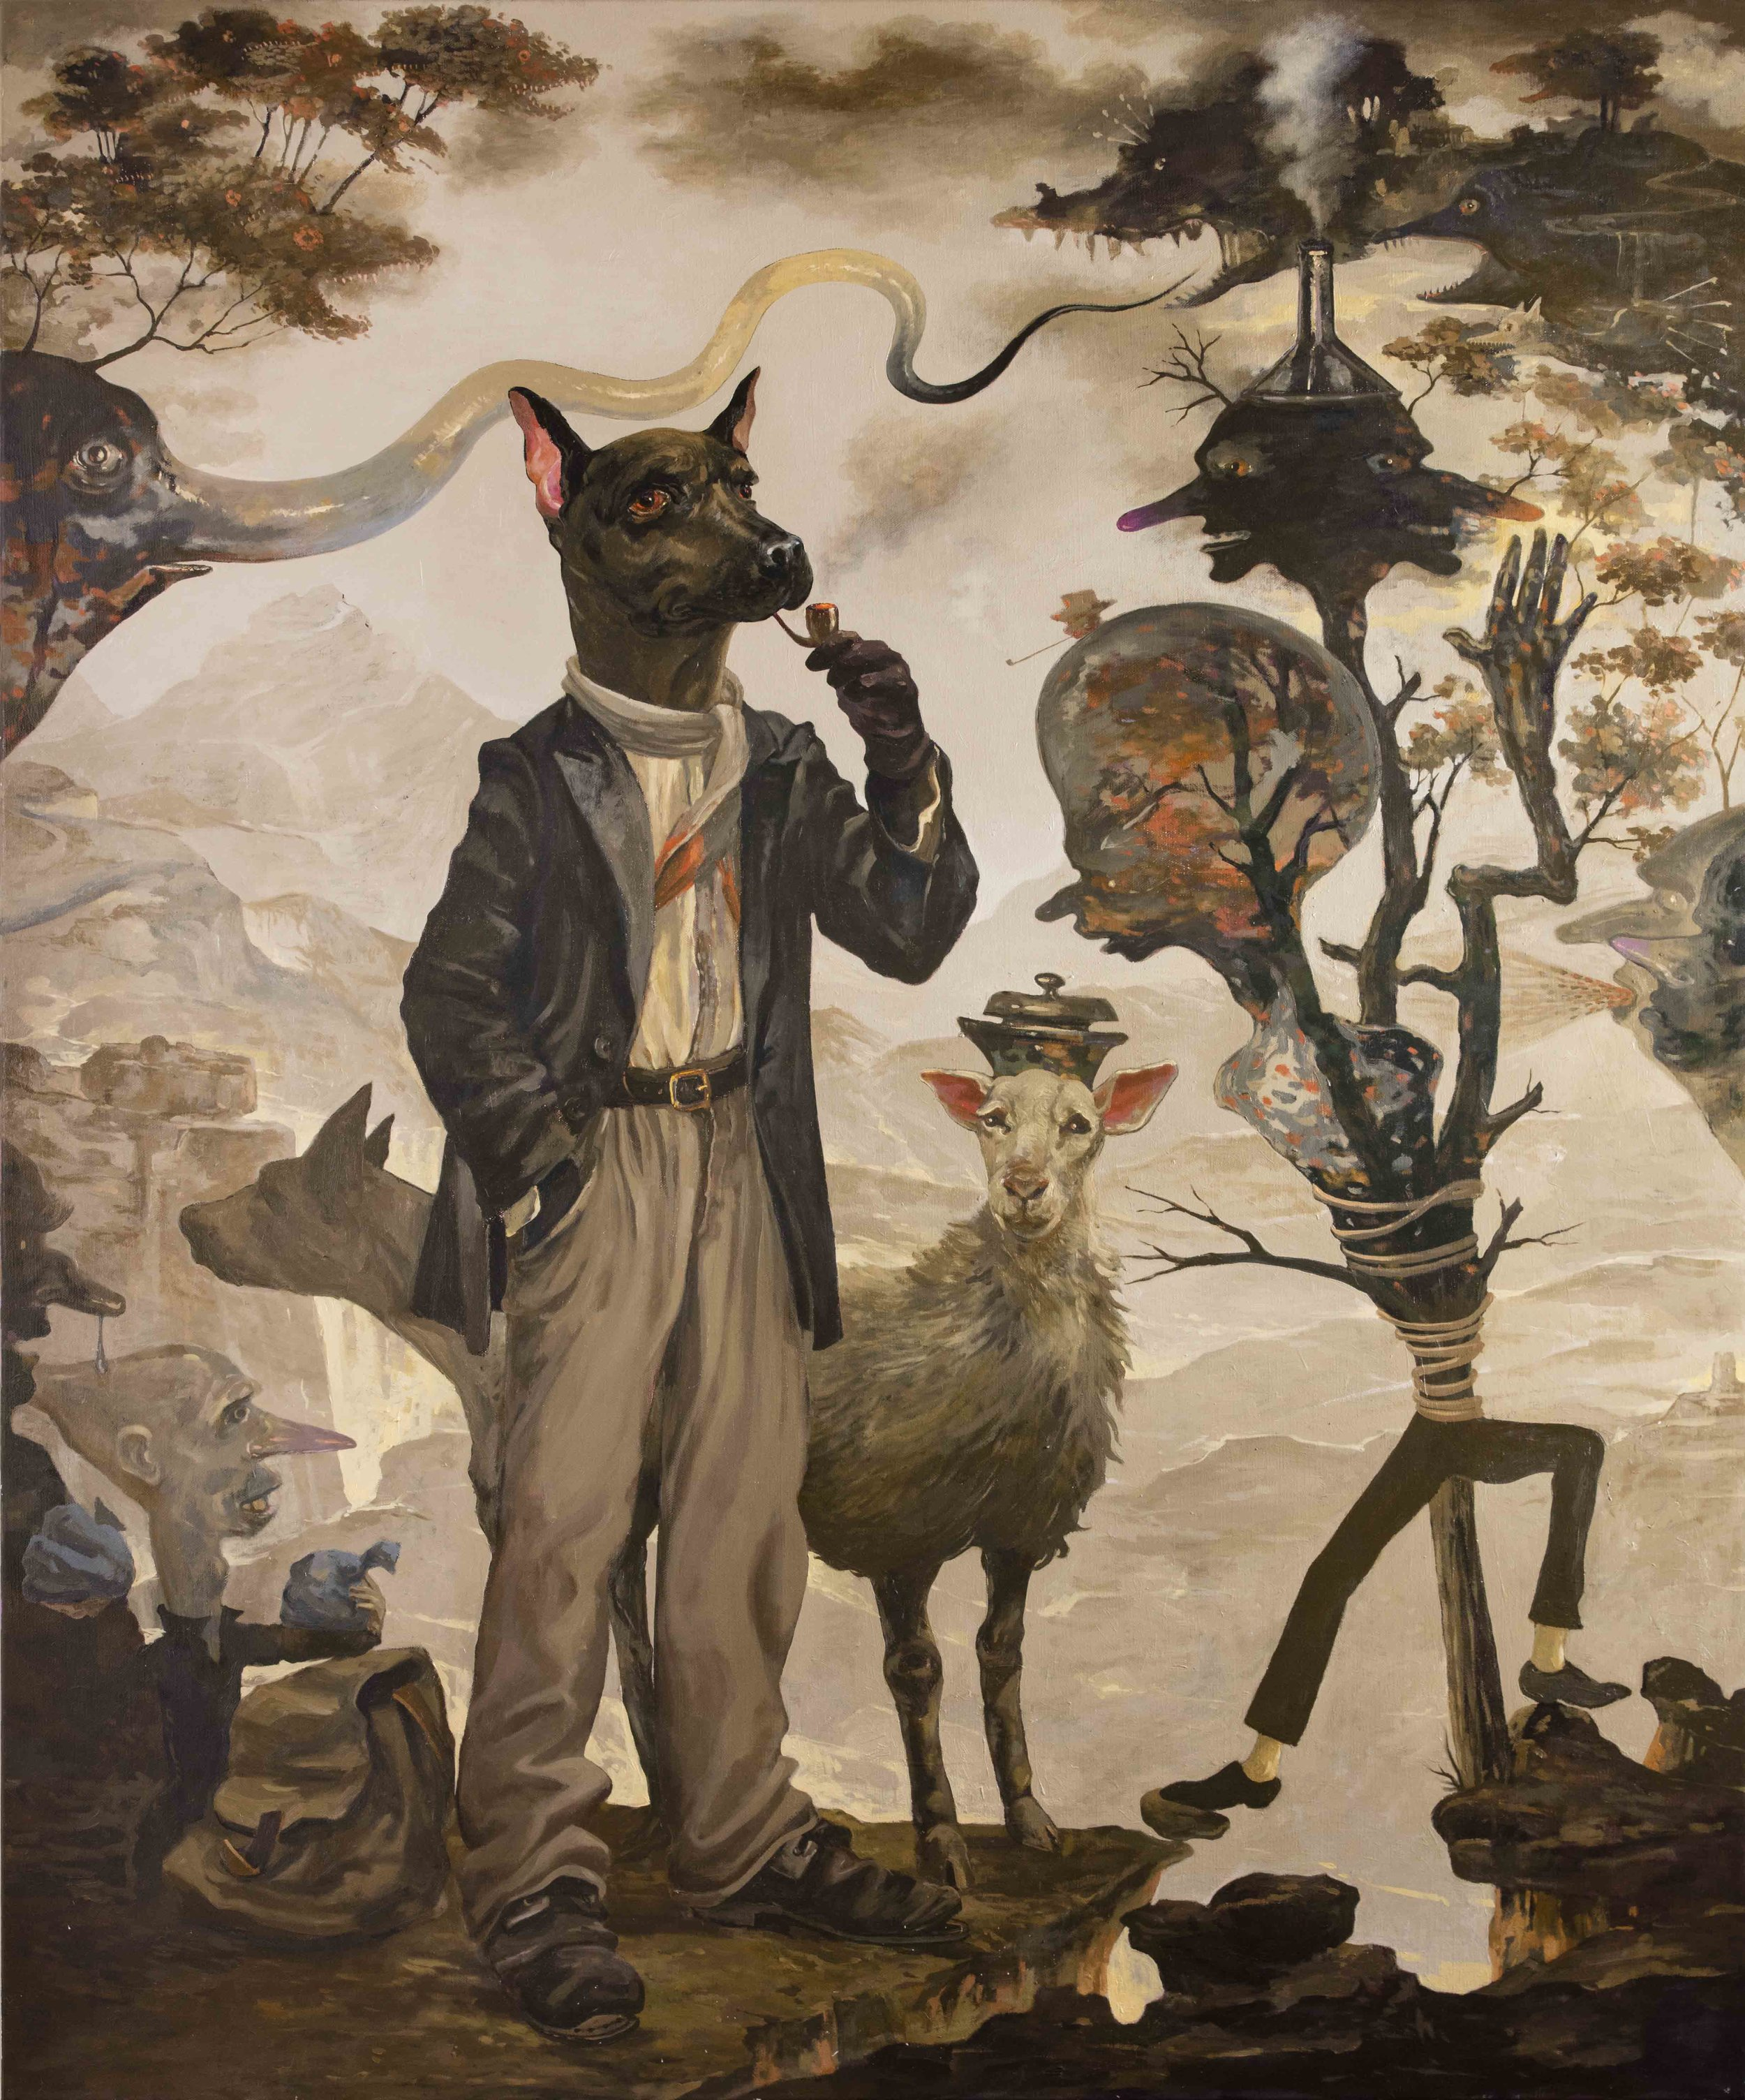 Michael Vale,  Smoking Dog Surrounded by Phantoms,  2008, Oil on linen, 183 x 152cm